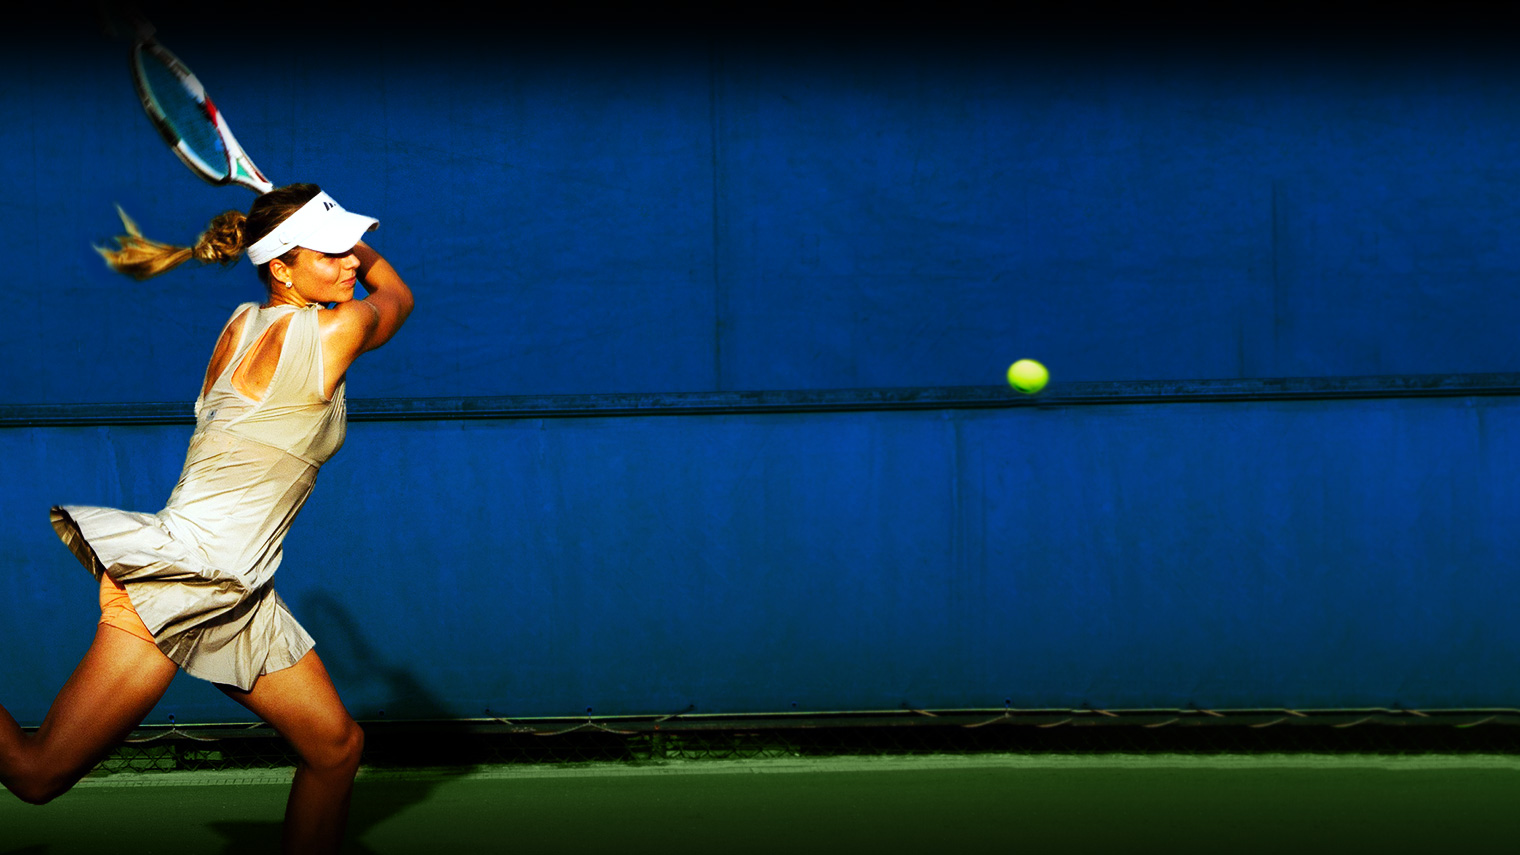 Our heart beats for tennis! And yours?